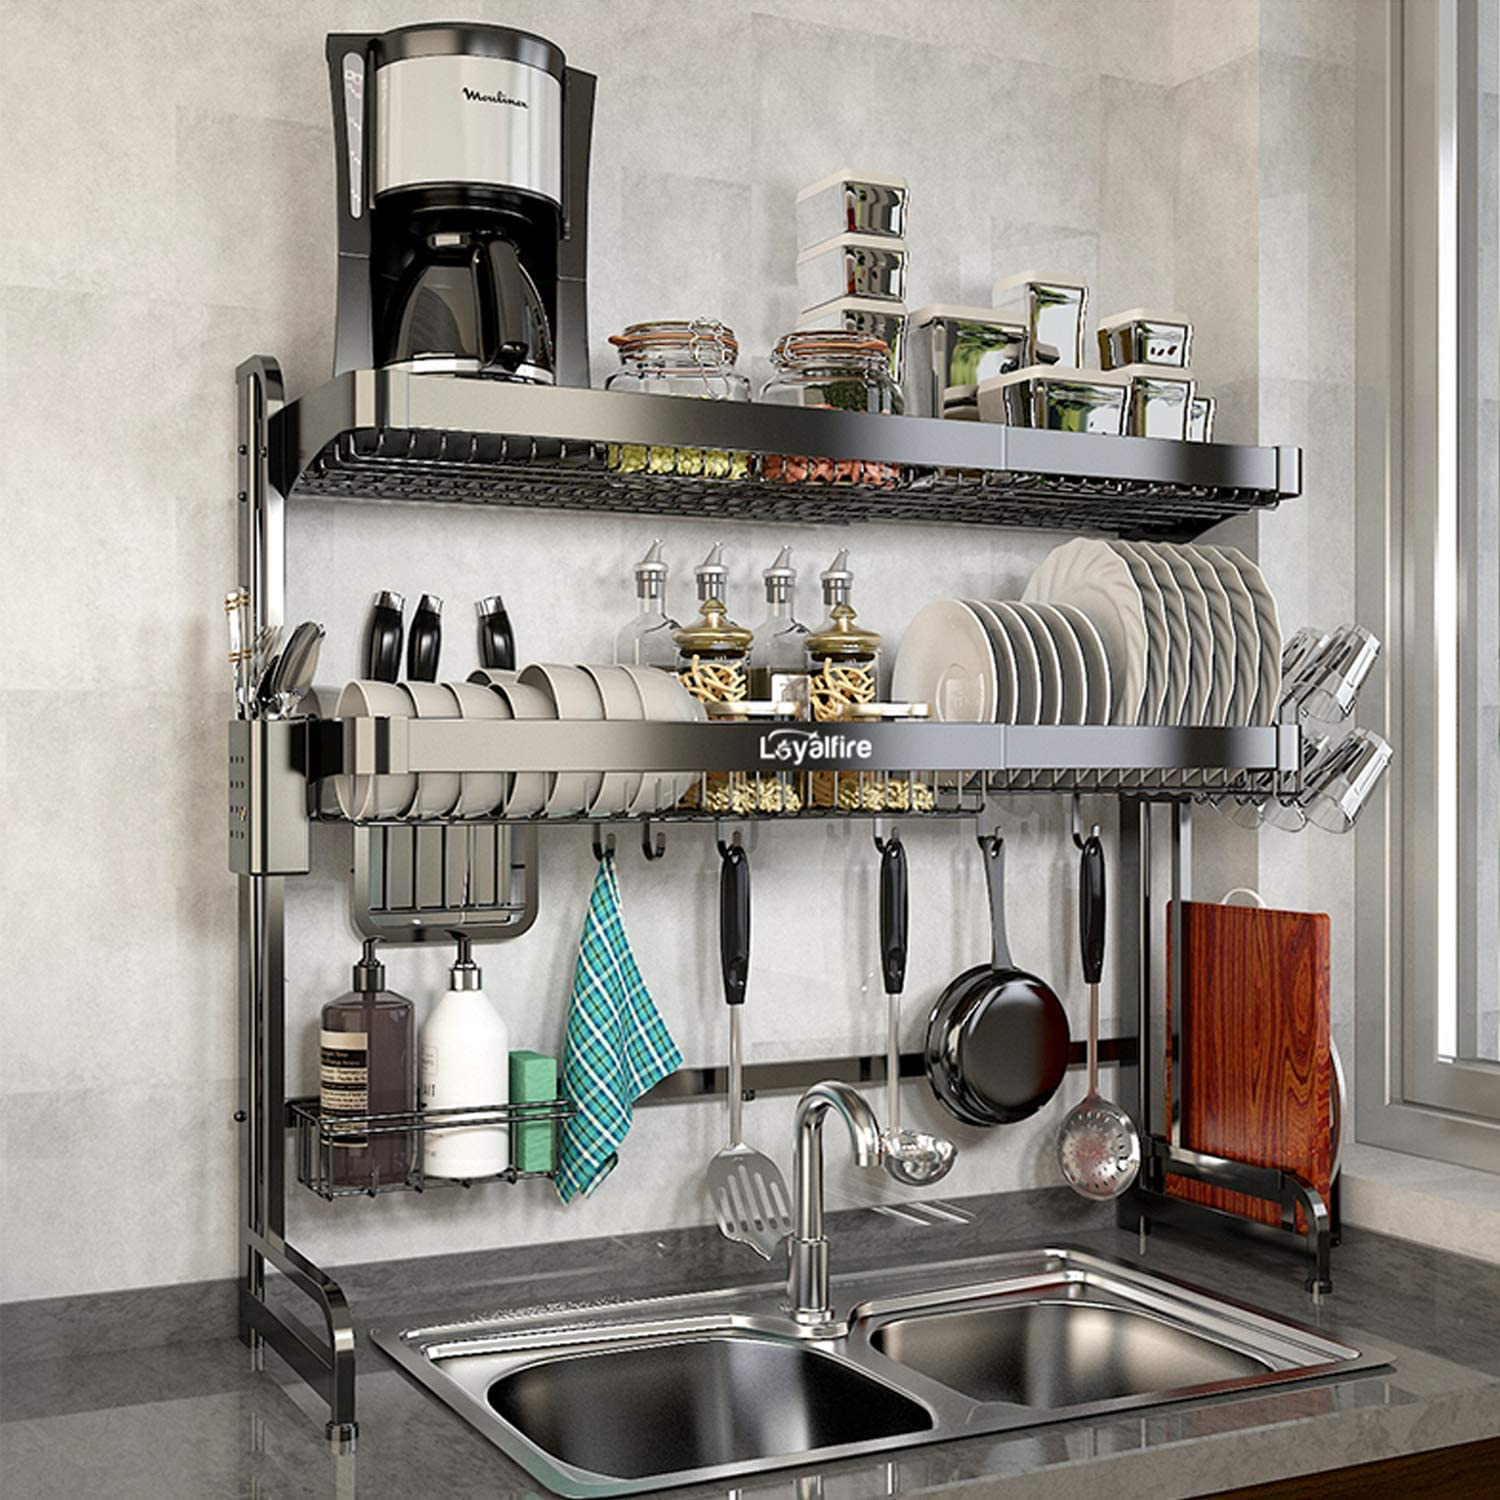 Over Sink Dish Drying Rack Loyalfire 2 Tier Stainless Steel Large Storage Adjustable Kitchen Dish Rack 24 41 37 6 Expandable Dish Drainer Shelf Rack With Utensil Holder And Cup Hanging Set Walmart Com